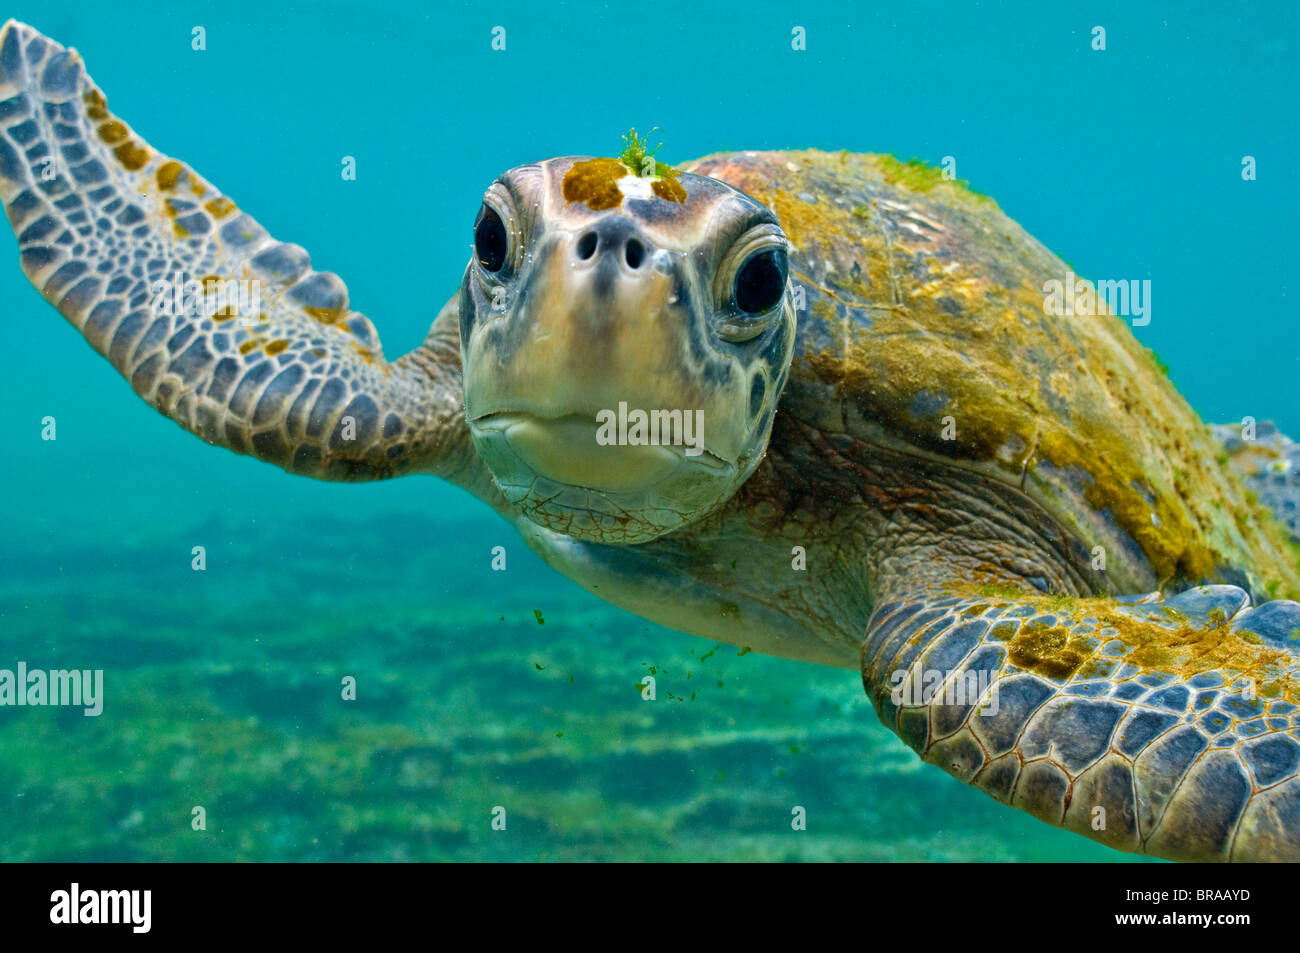 Galapagos green turtle (Chelonia mydas agassisi) underwater portrait, note algae growing on head and shell - Stock Image